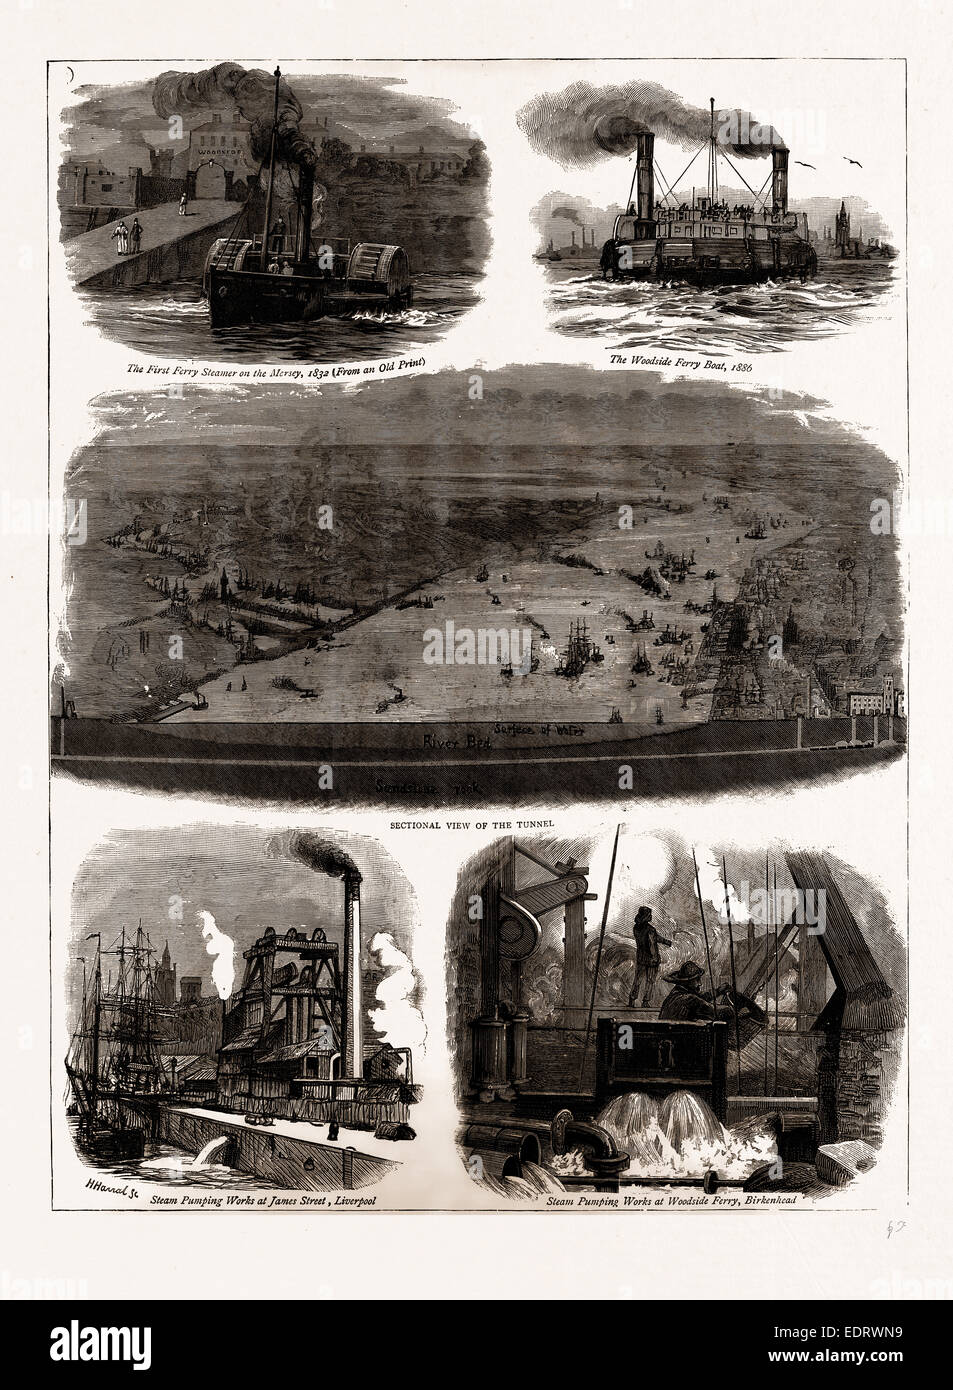 THE MERSEY TUNNEL OPENED BY THE PRINCE OF WALES, JAN. 20, UK, 1886; The First Ferry Steamer on the Mersey, 1832 - Stock Image